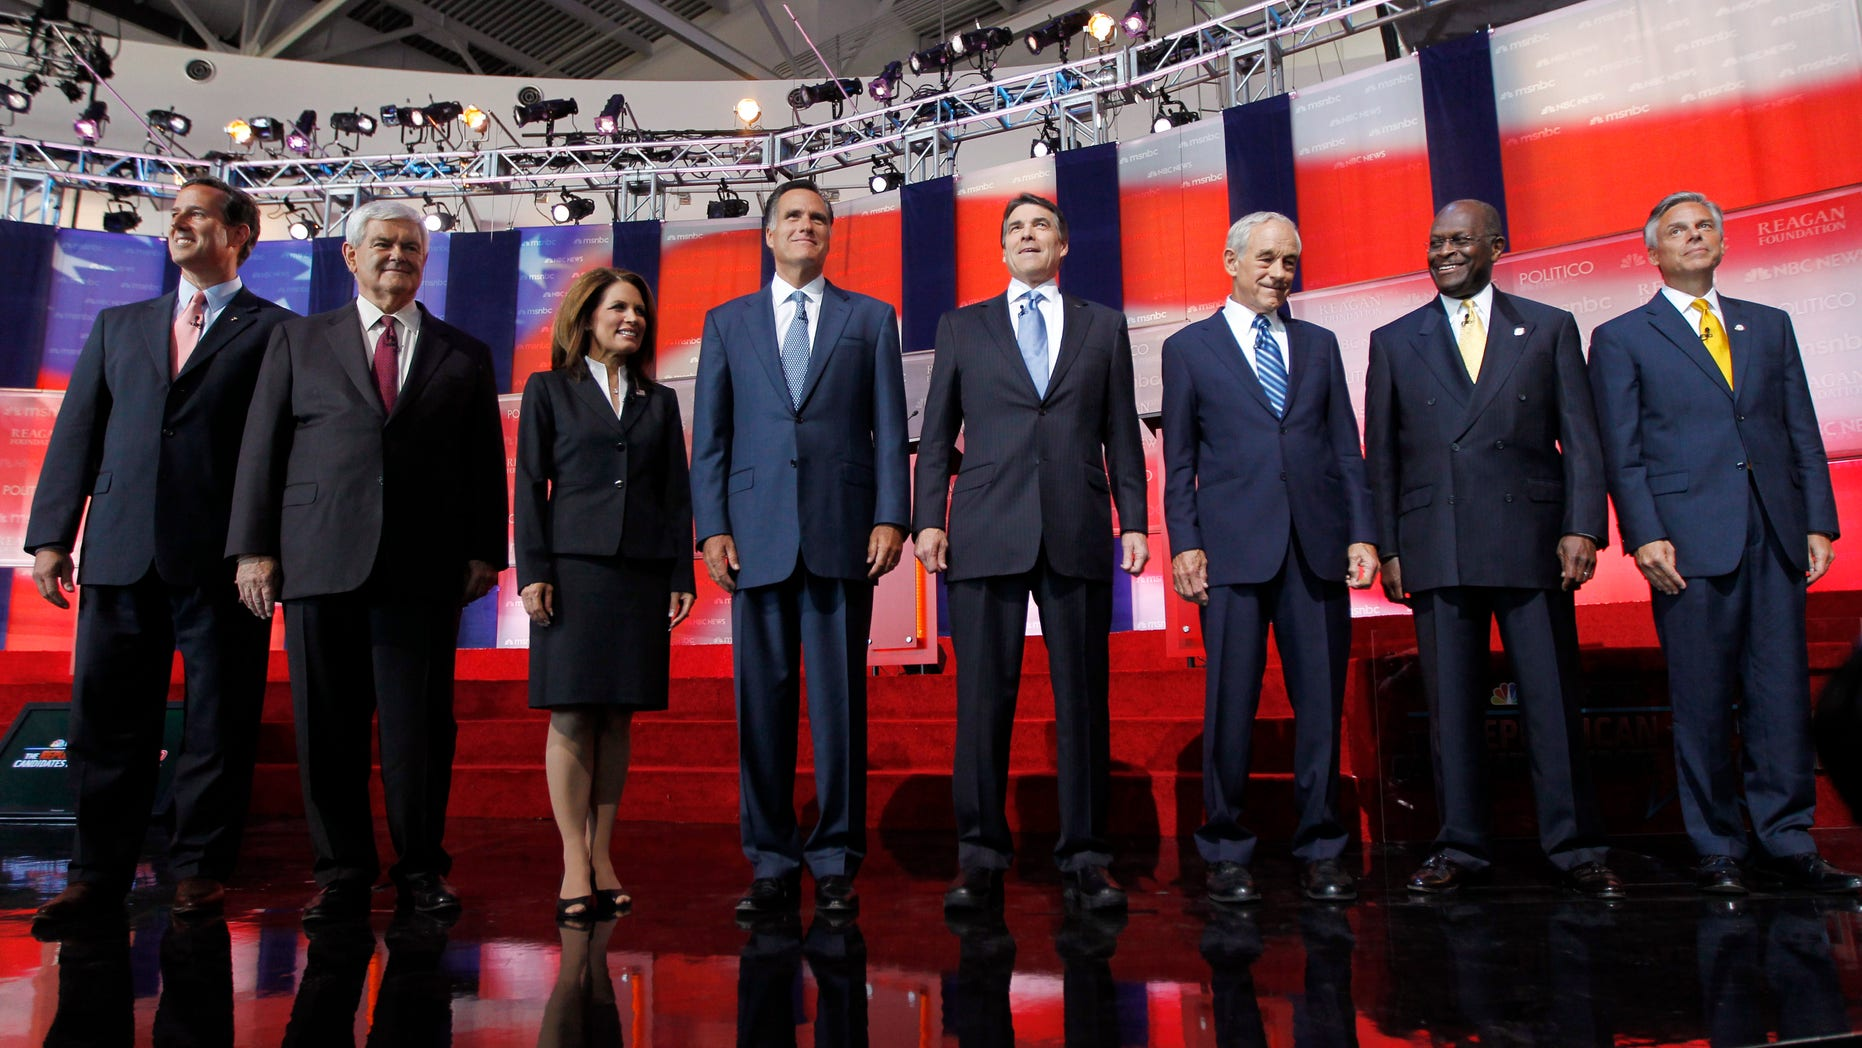 In this Sept. 7, 2011, file photo Republican presidential candidates stand together before a Republican presidential candidate debate at the Reagan Library in Simi Valley, Calif.